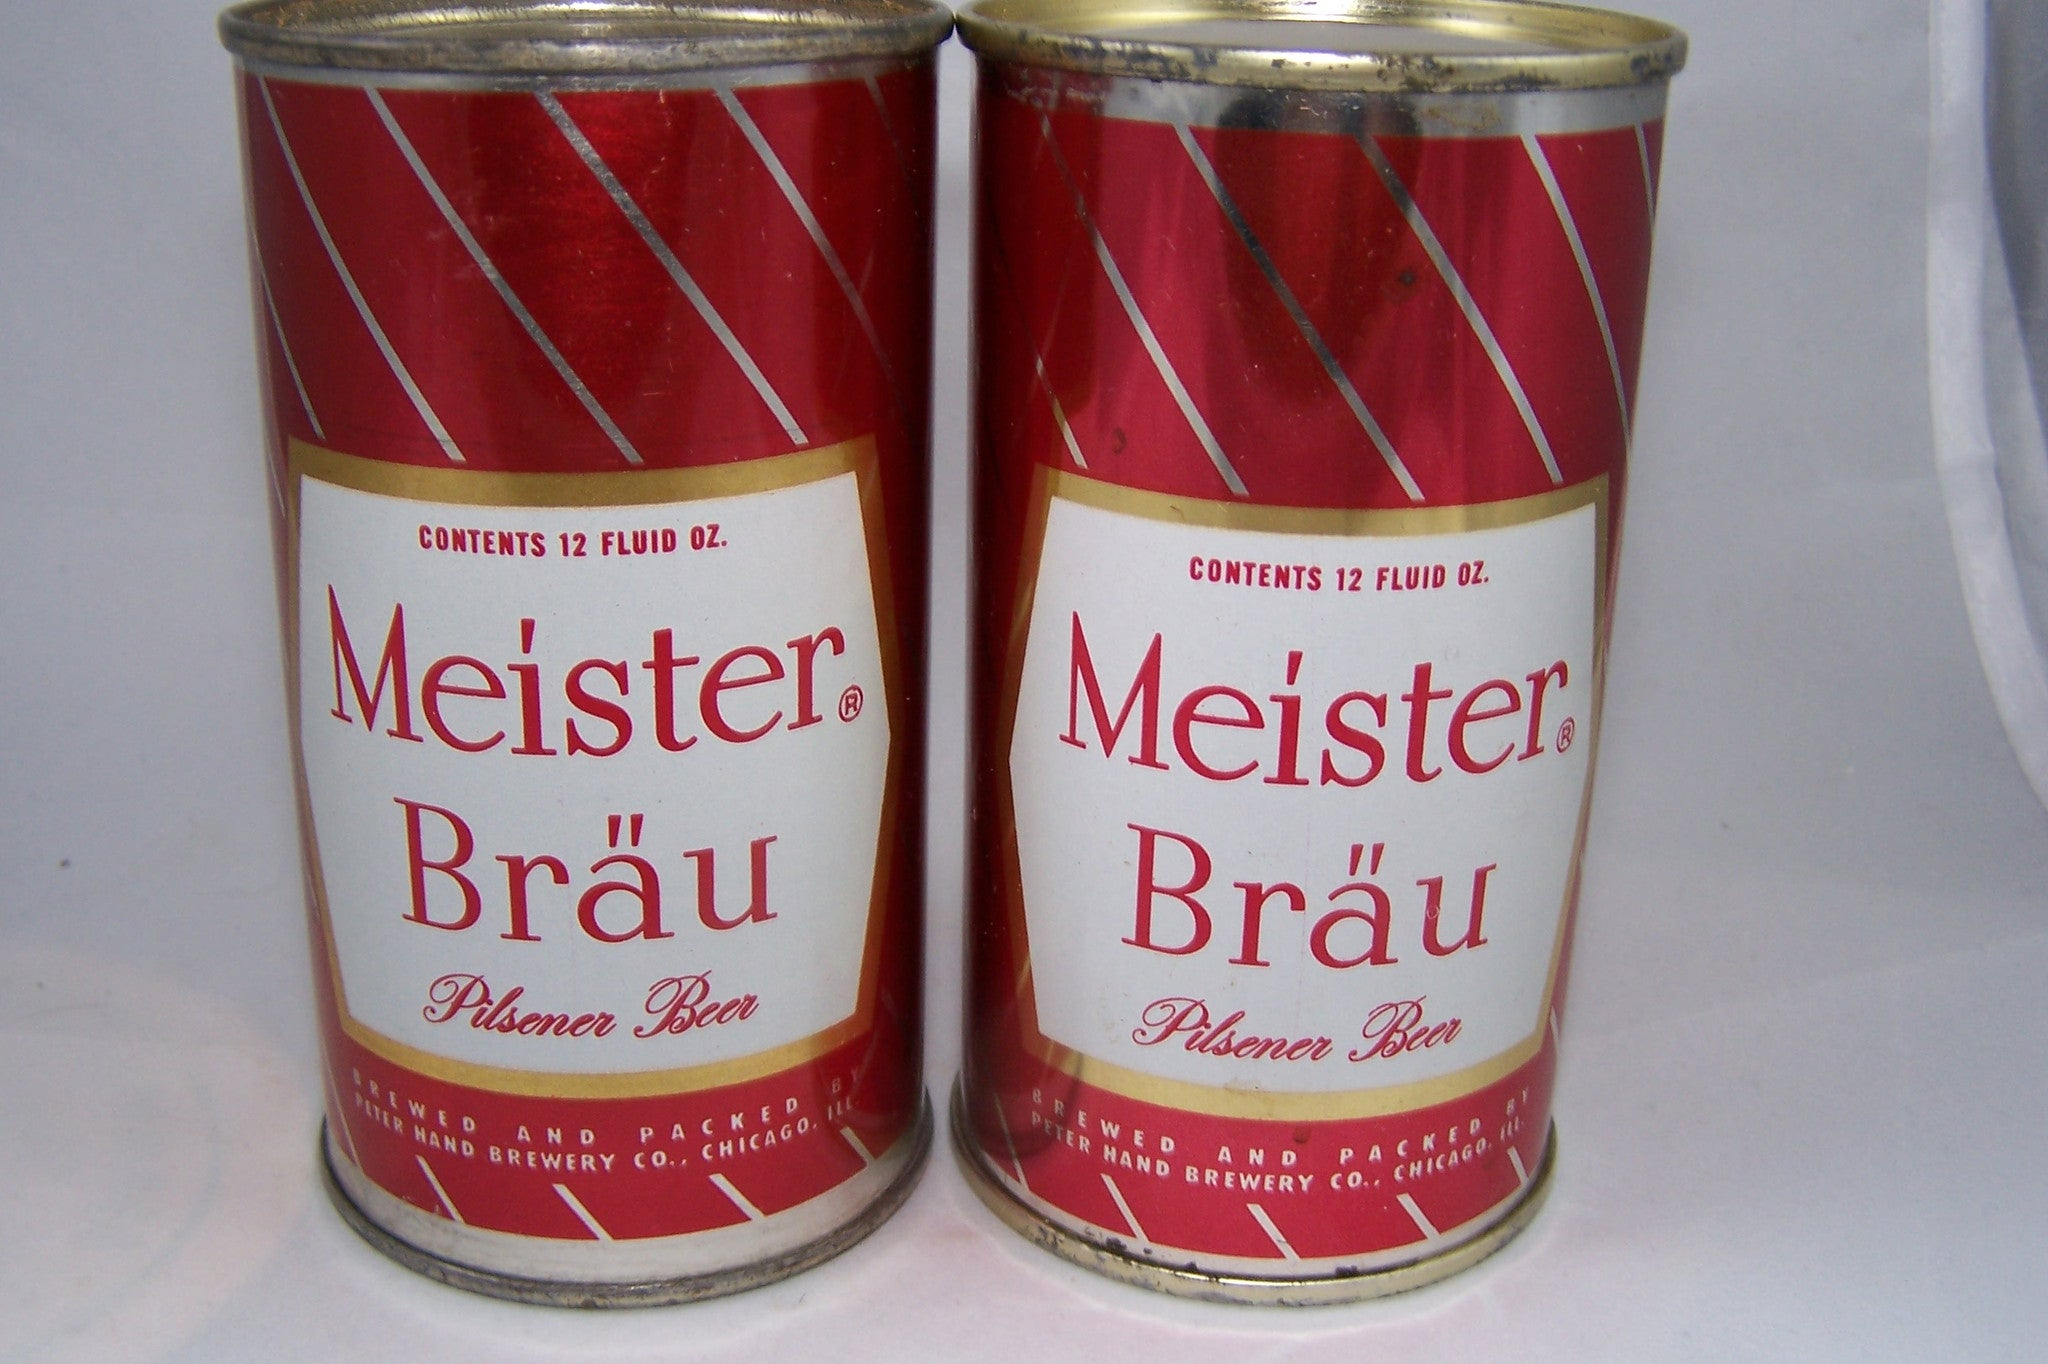 Meister Brau Pilsener Beer, (enamel) USBC N.L Grade 1/1+ Traded on 10/03/15